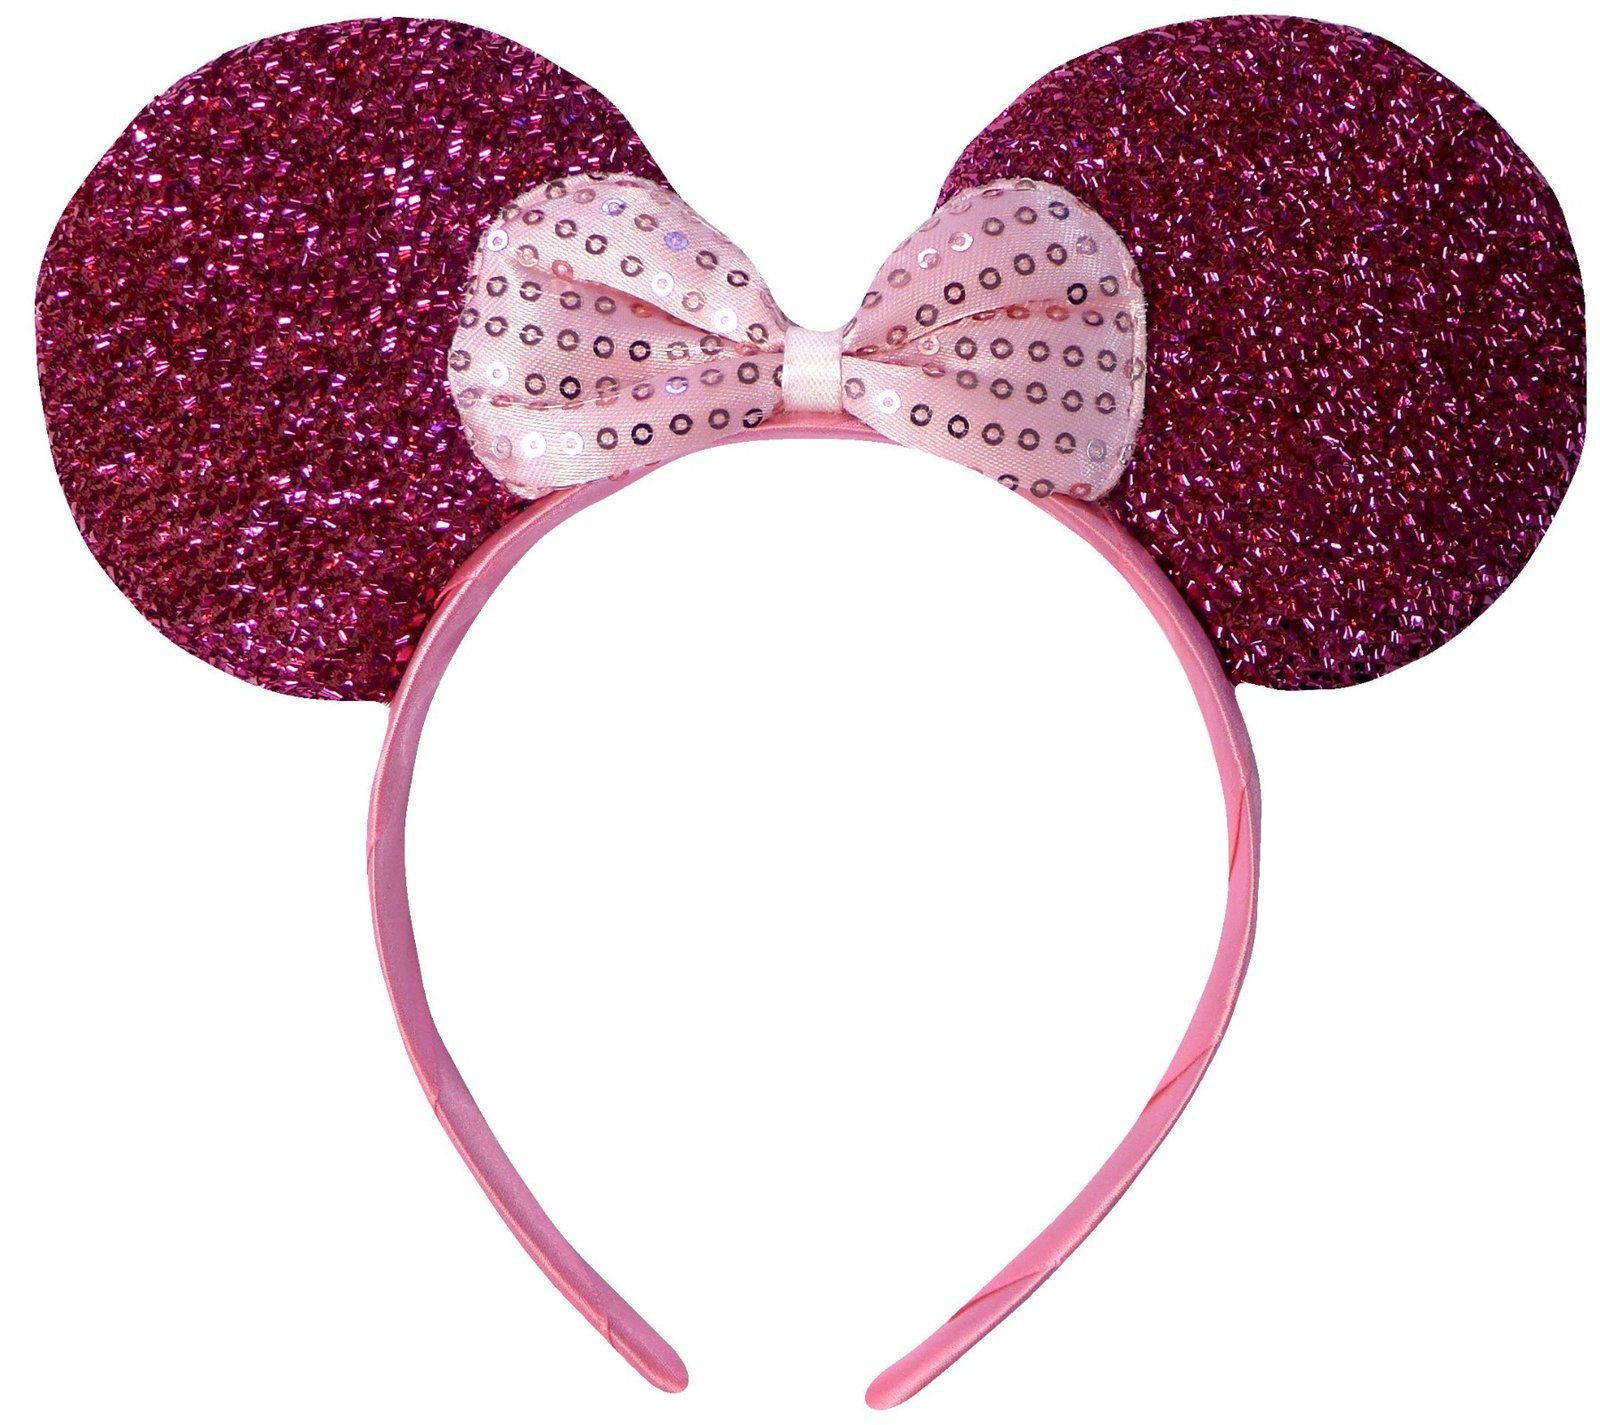 Hot Pink Sparkly Minnie Mouse Ears Fancy Dress Headband by DangerousFX